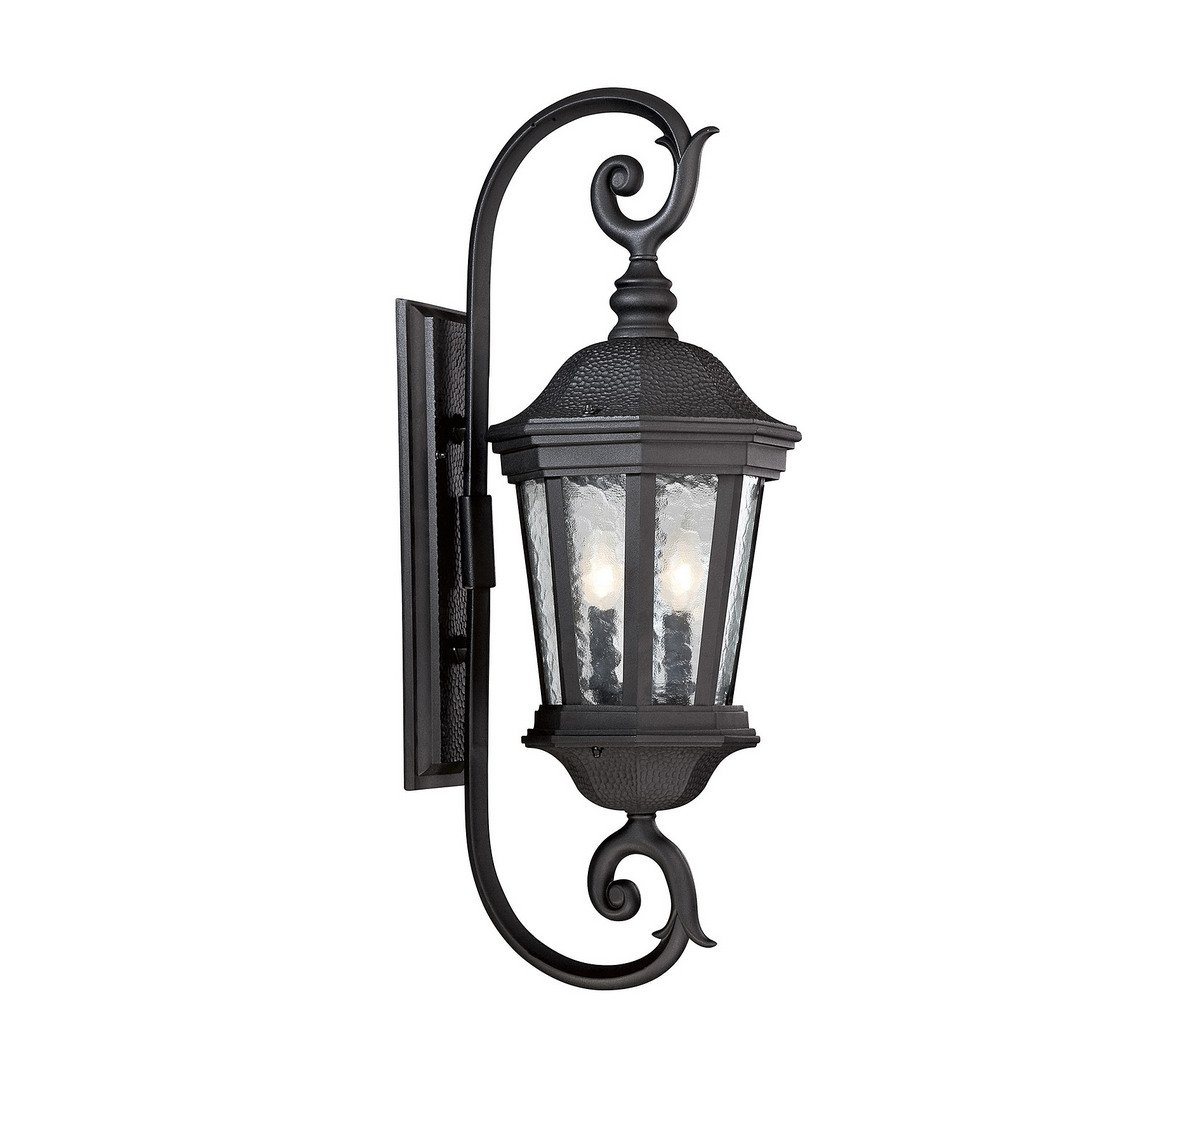 Savoy House 5-5082-BK Hampden 28'' 2-Light Outdoor Wall Lantern in Black